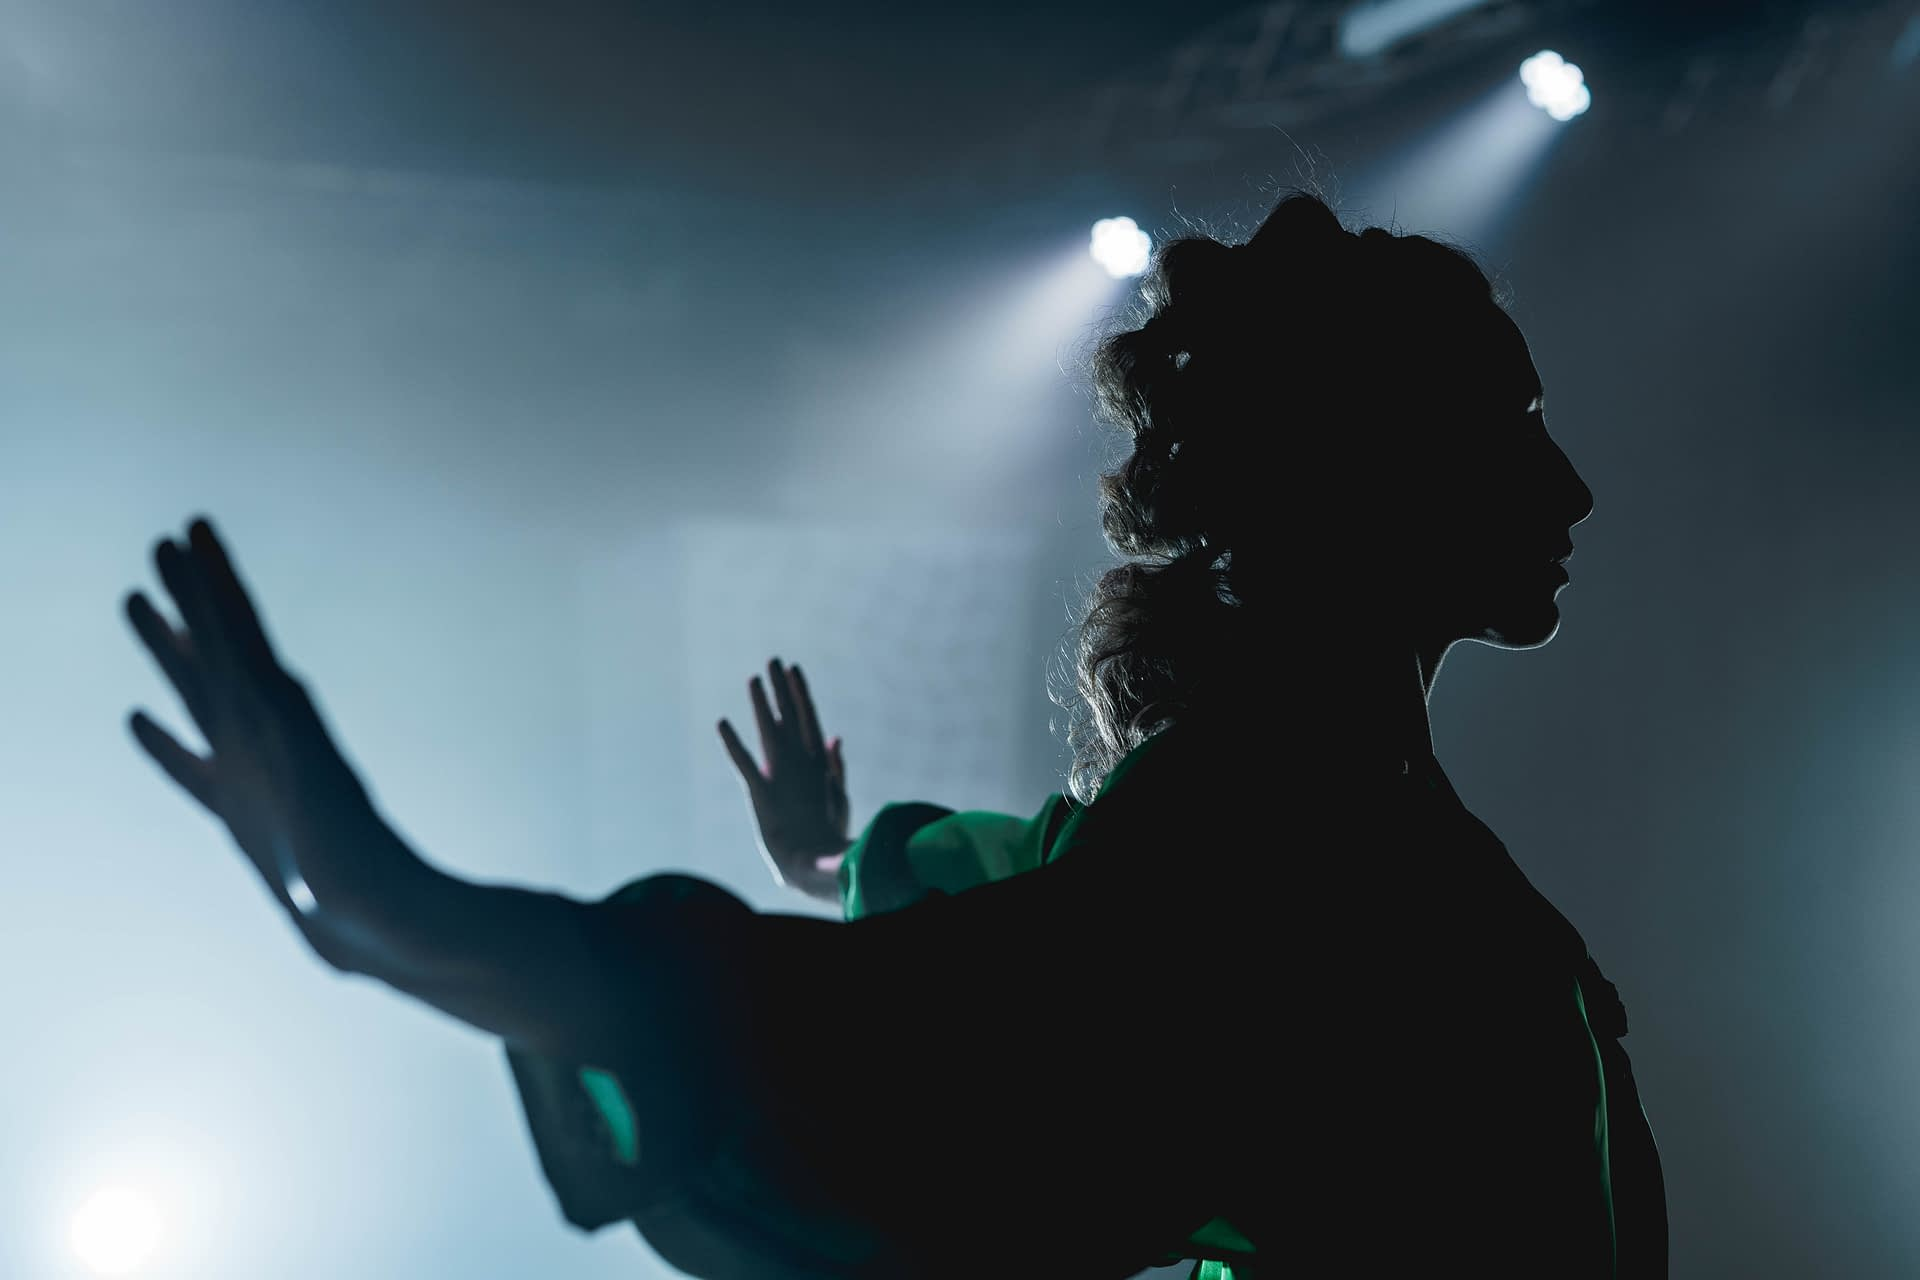 Profile of a woman dancing in shadow with her arms spread wide